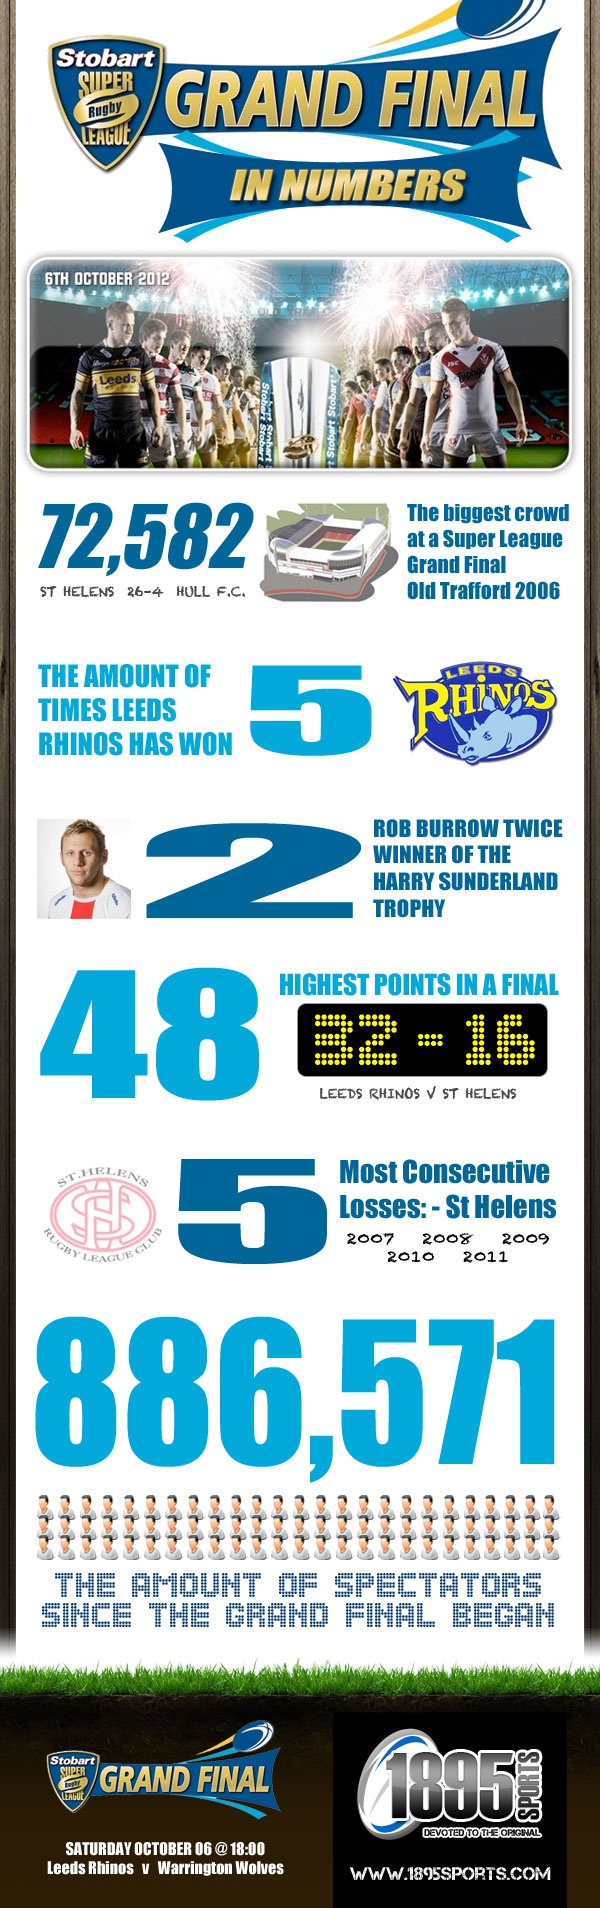 Rugby League Super League Grand Final in numbers